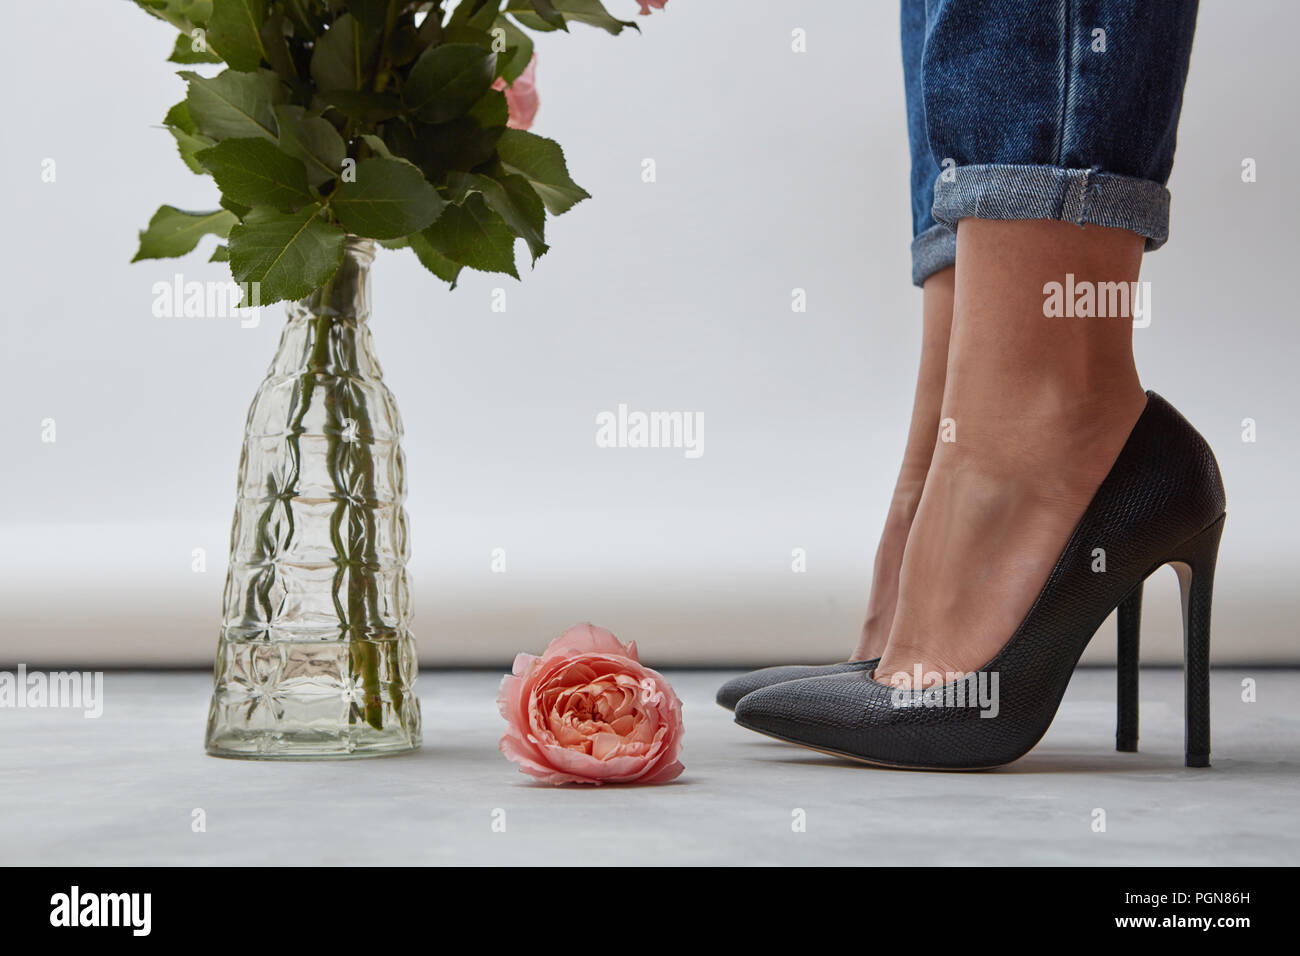 92a332cfbfa On the floor is one pink rose, a glass vase with green branches near the  legs of a girl shod with black shoes on high heels on a gray background